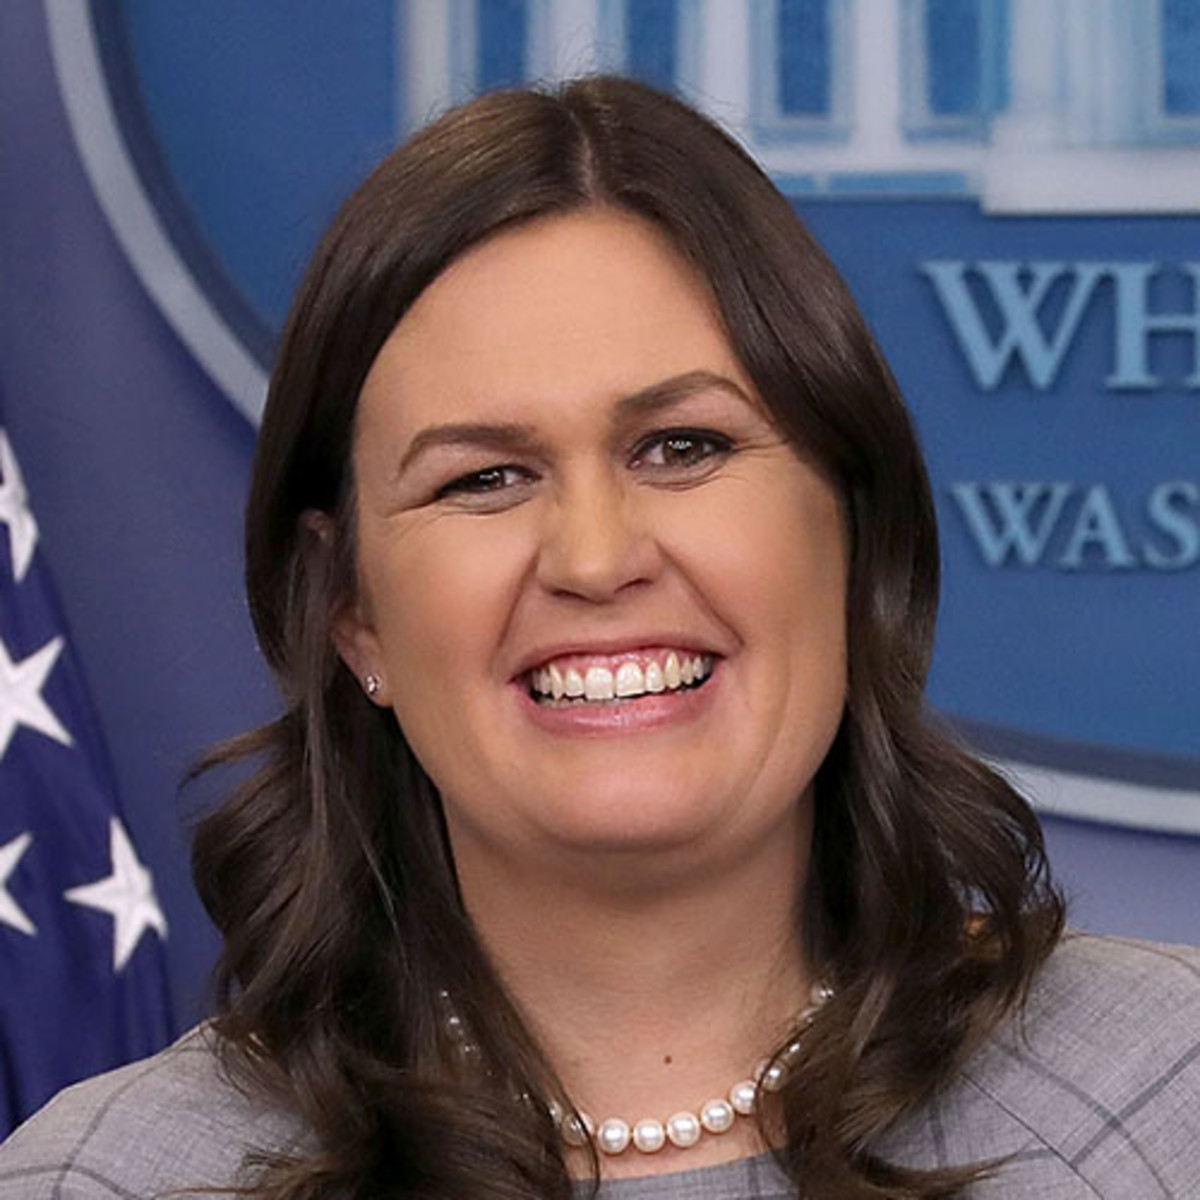 why did sarah sanders sue her father